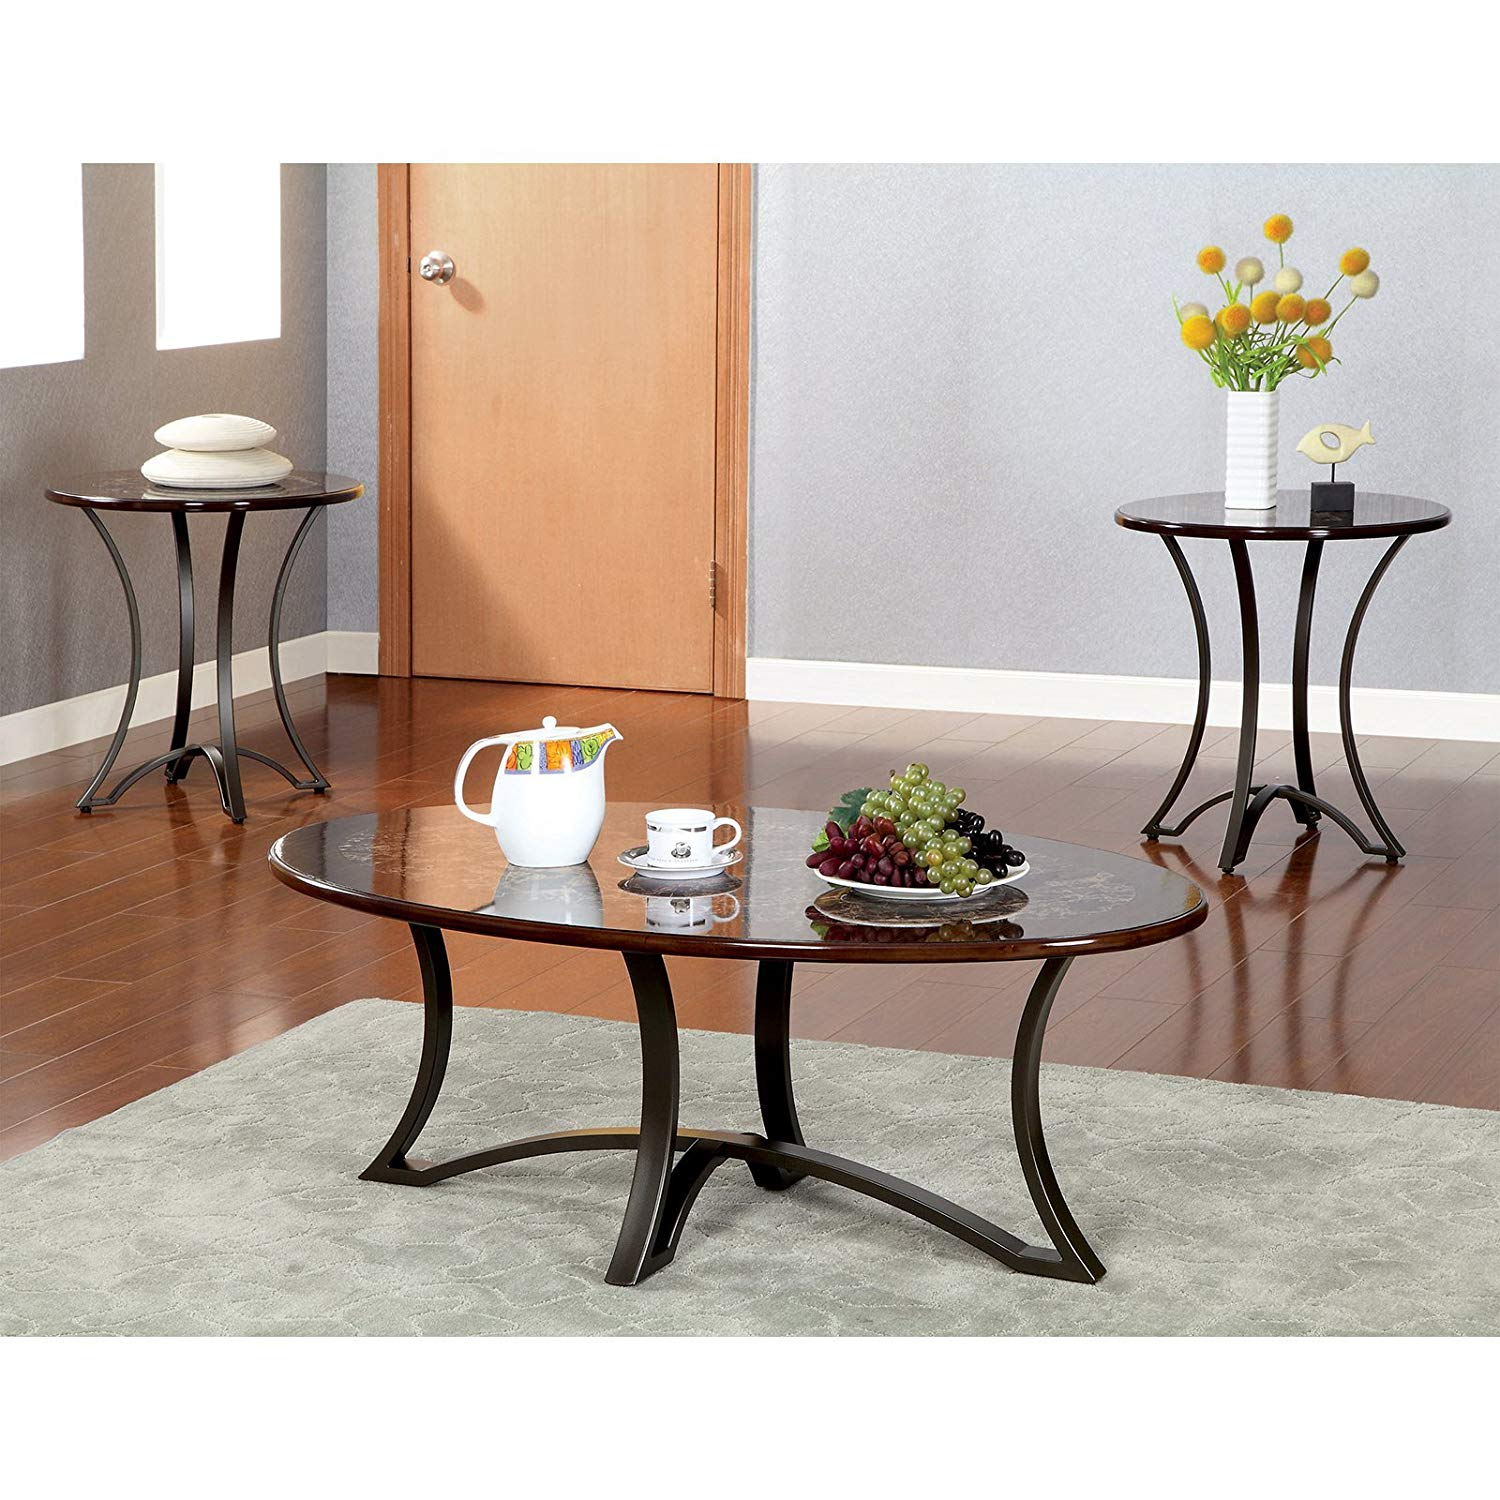 piece marble coffee table set find accent get quotations one and two end tables faux whole tablecloths futon covers bath beyond baroque bedside oriental vase lamp foot patio